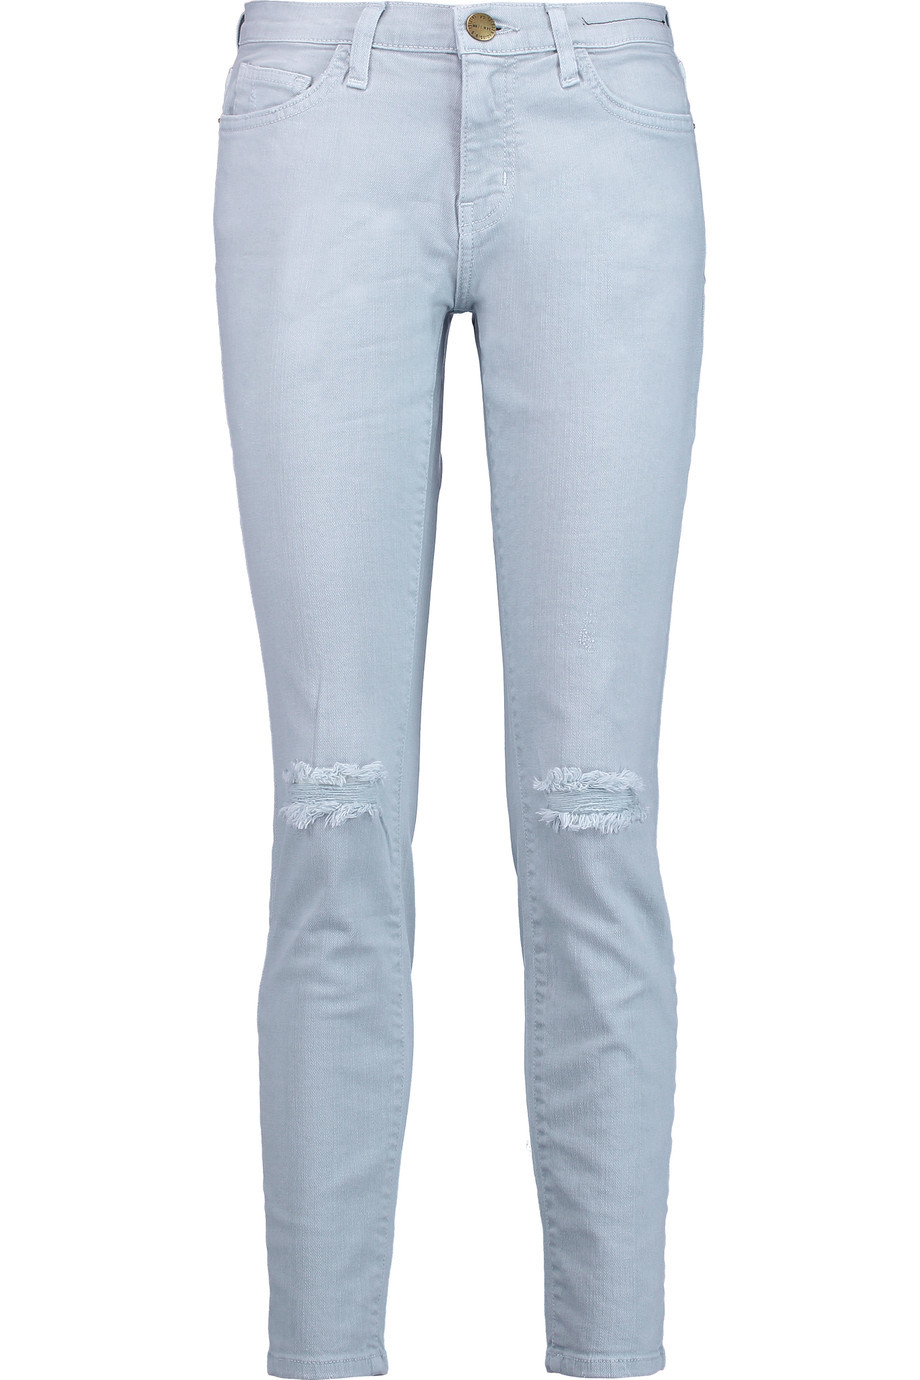 The Stiletto Distressed Mid Rise Skinny Jeans Sky Blue - style: skinny leg; length: standard; pattern: plain; pocket detail: traditional 5 pocket; waist: mid/regular rise; predominant colour: pale blue; occasions: casual; fibres: cotton - stretch; texture group: denim; pattern type: fabric; jeans detail: rips; season: s/s 2016; wardrobe: basic